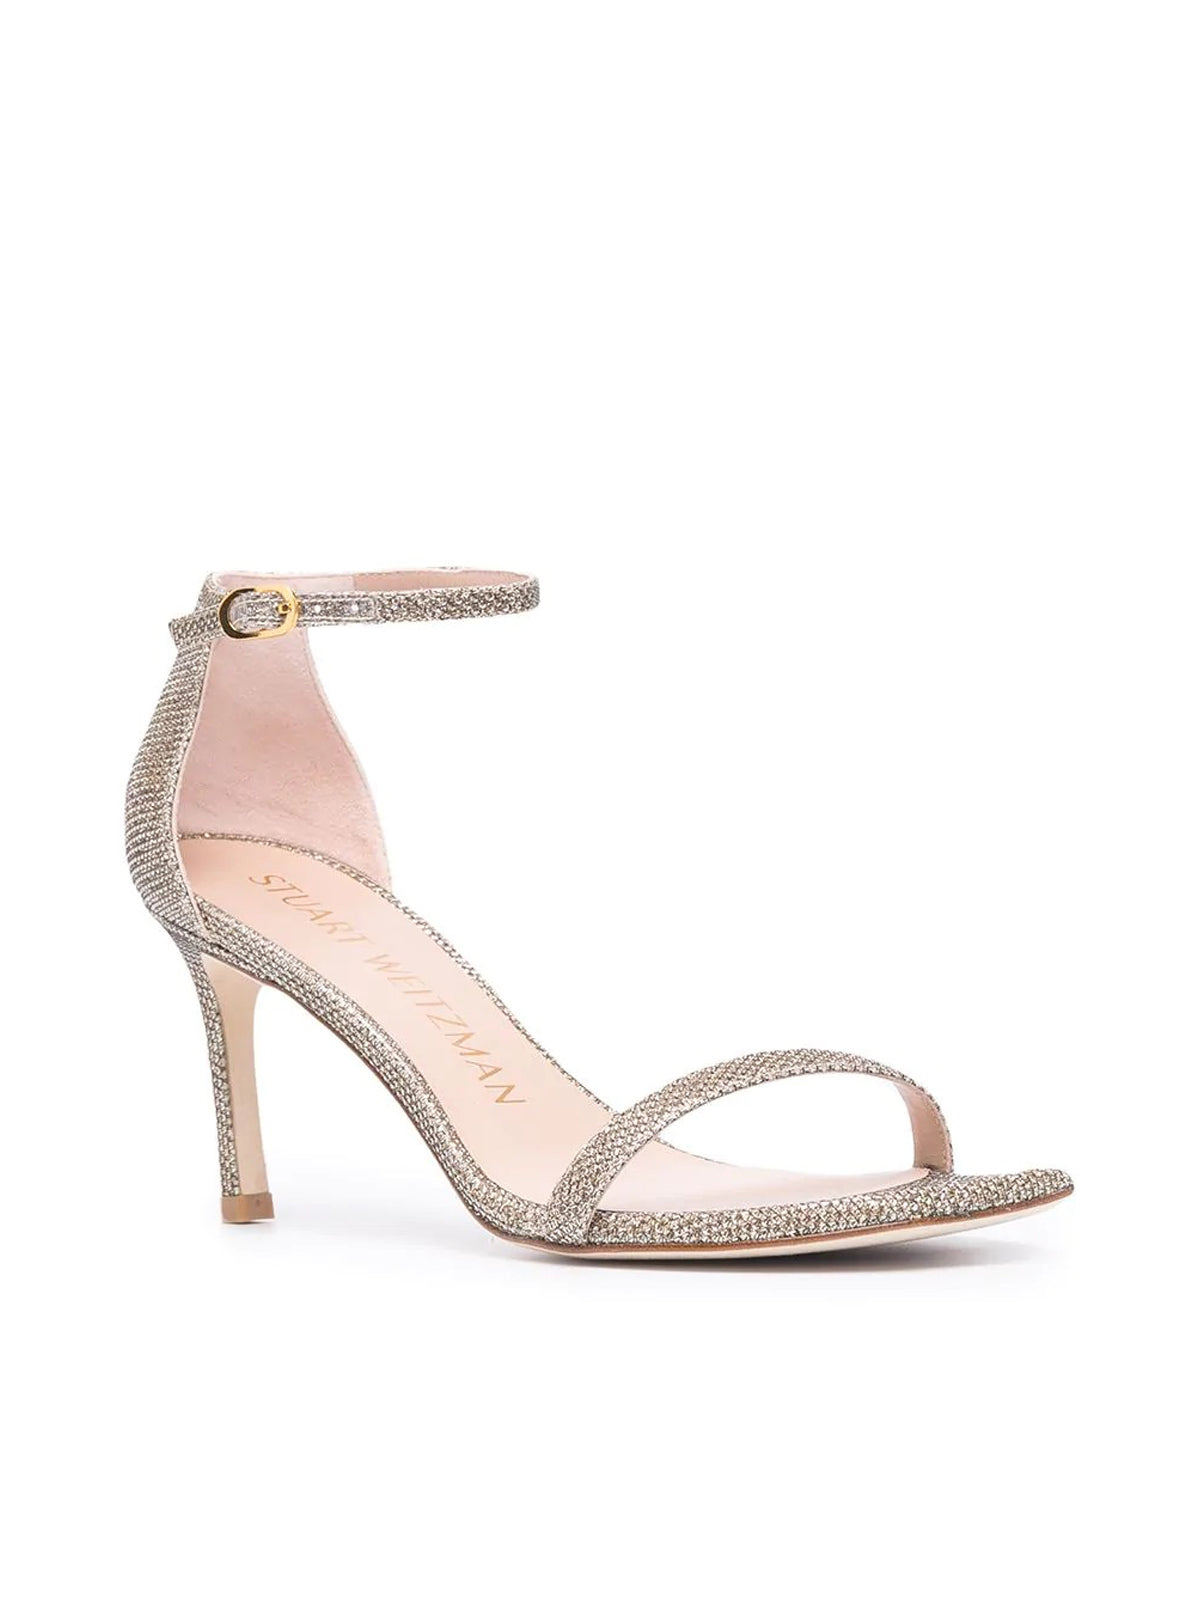 glitter-effect square-toe sandals